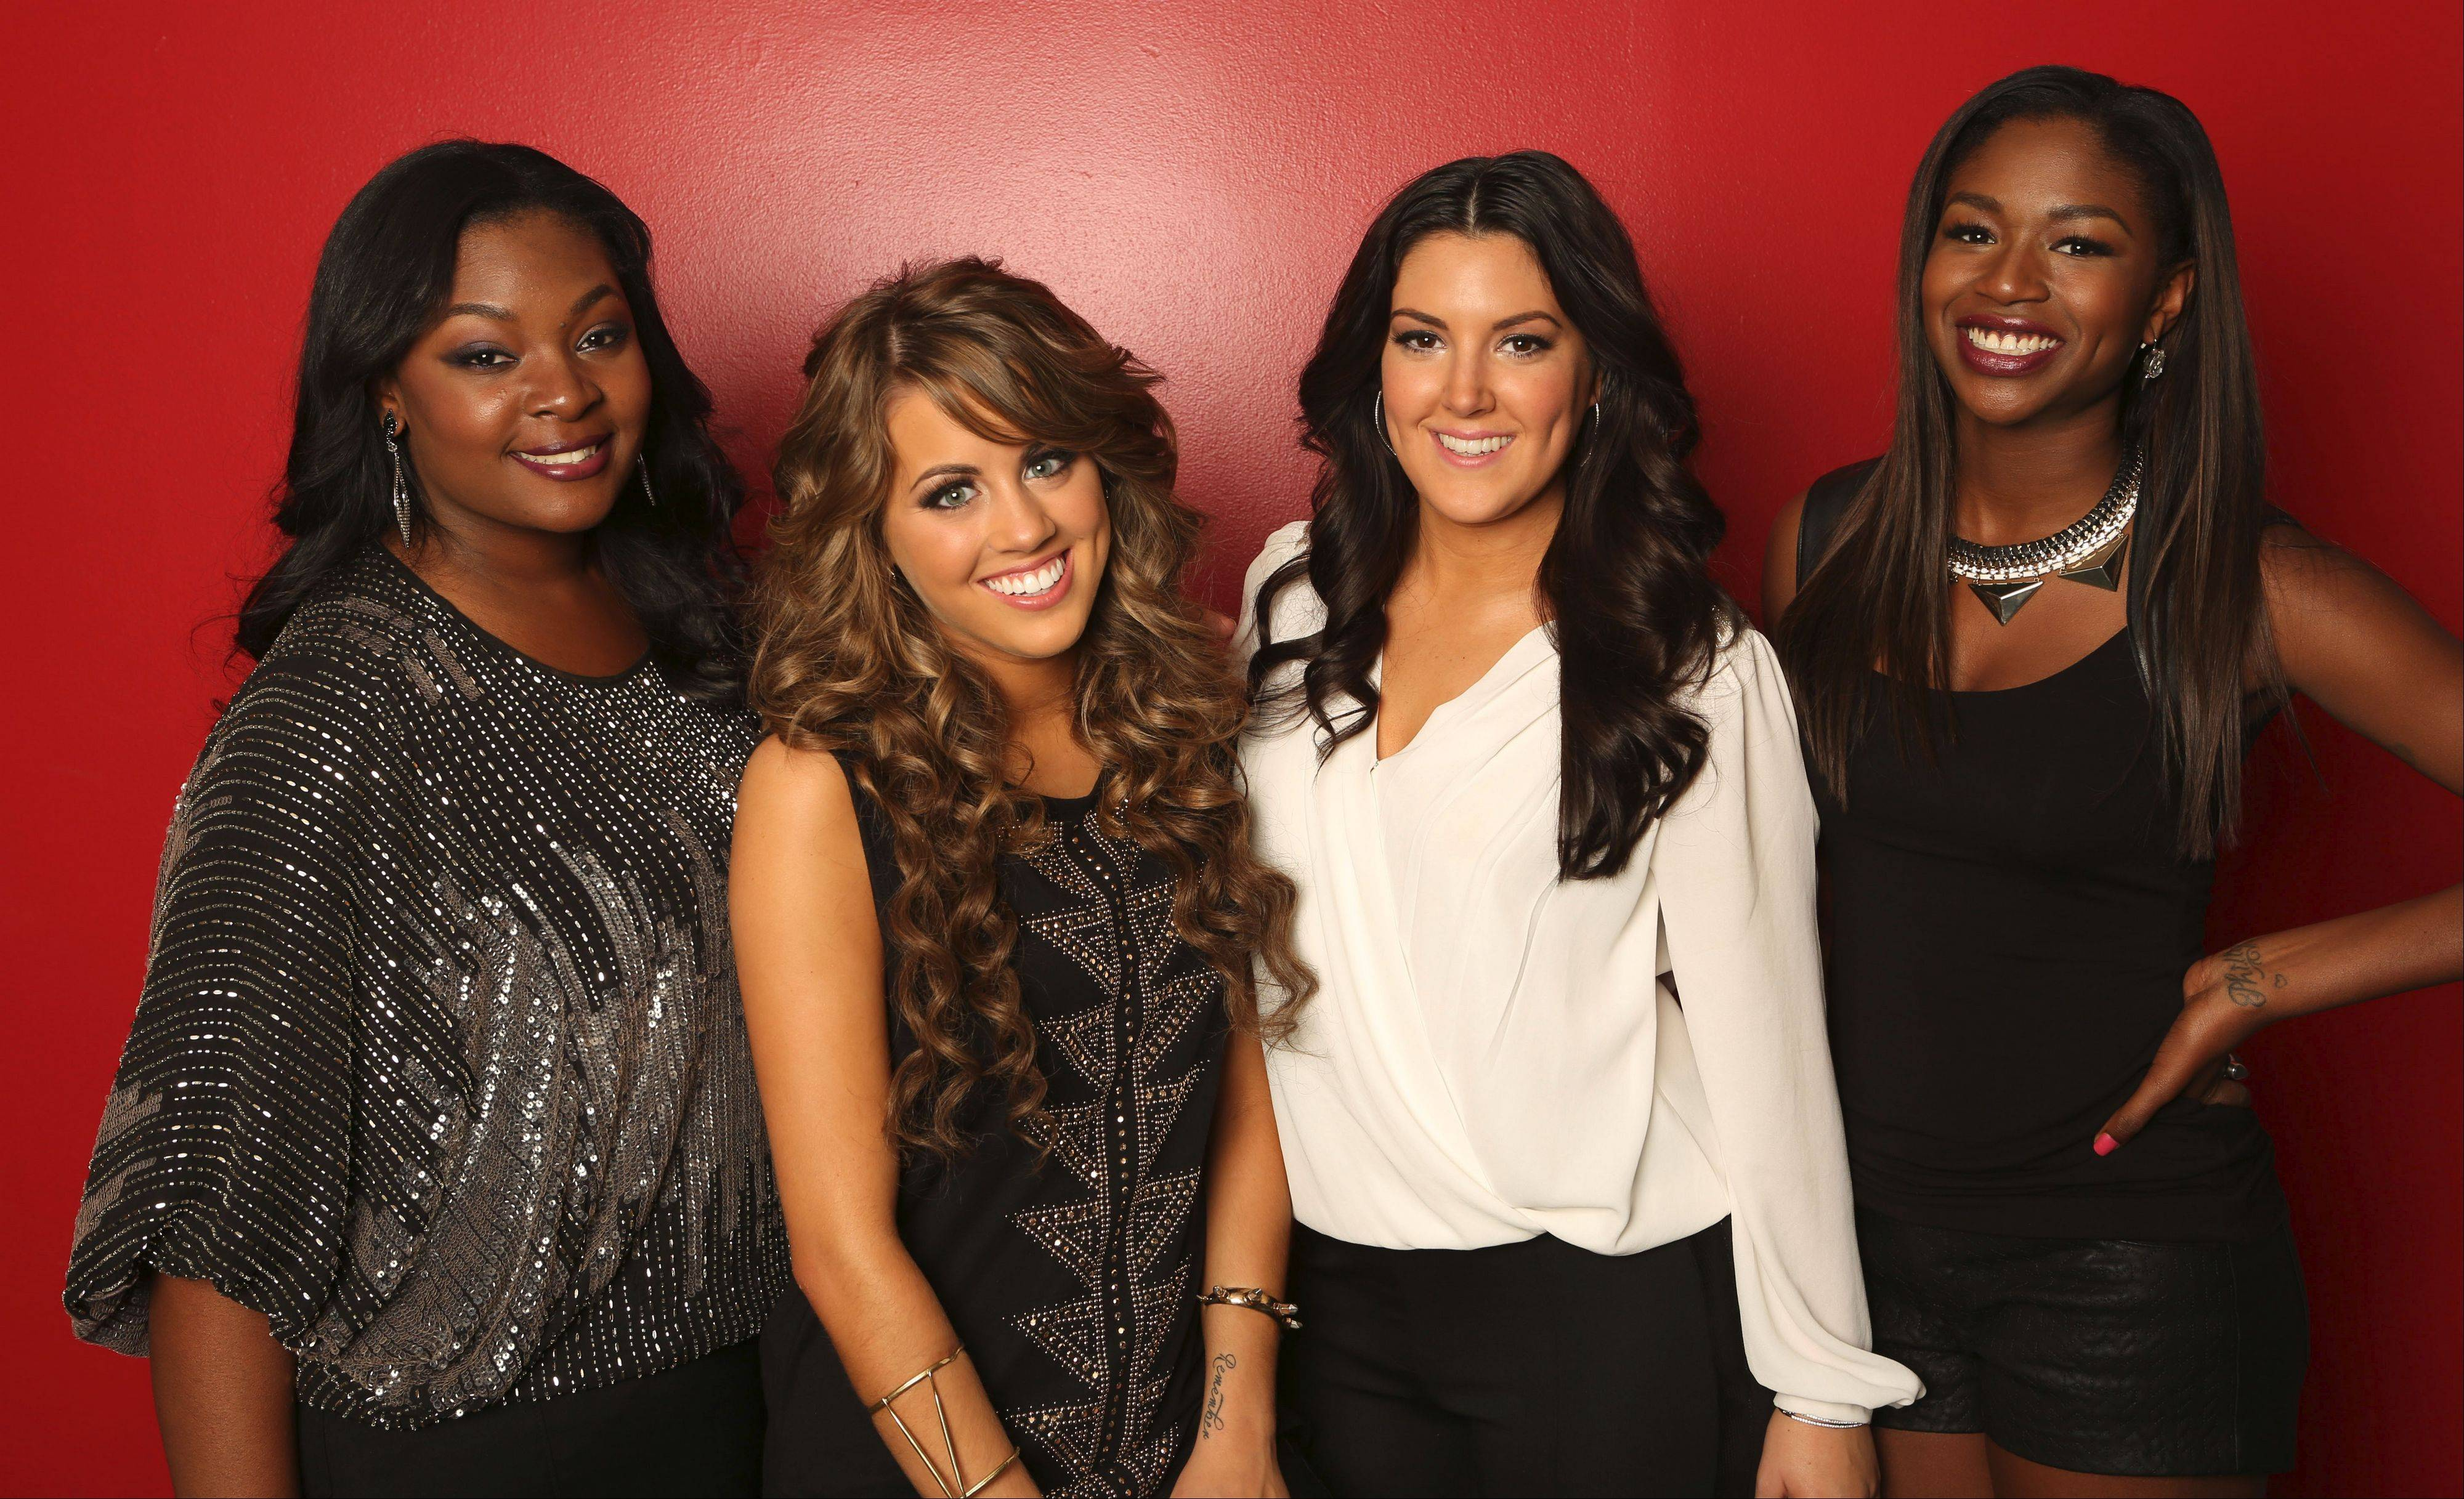 Candice Glover, left, Angie Miller, Kree Harrison and Amber Holcomb are four of the top 10 finalists on this season�s �American Idol� who will be part of the �American Idol Live 2013 Tour� on Saturday, July 6, at the Allstate Arena in Rosemont.